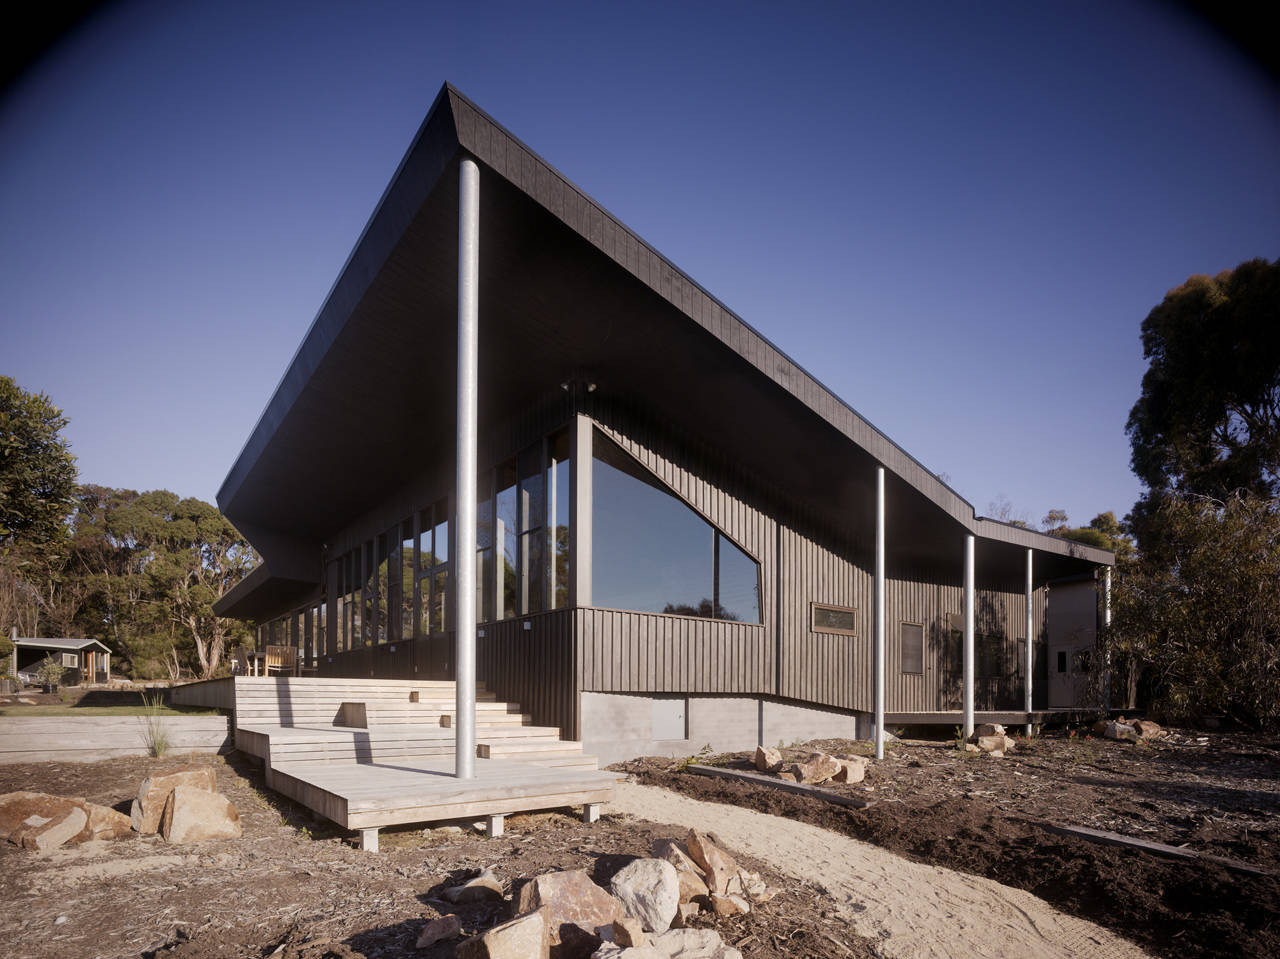 Courtyard House Somers / Opat Architects, Courtesy of  opat architects